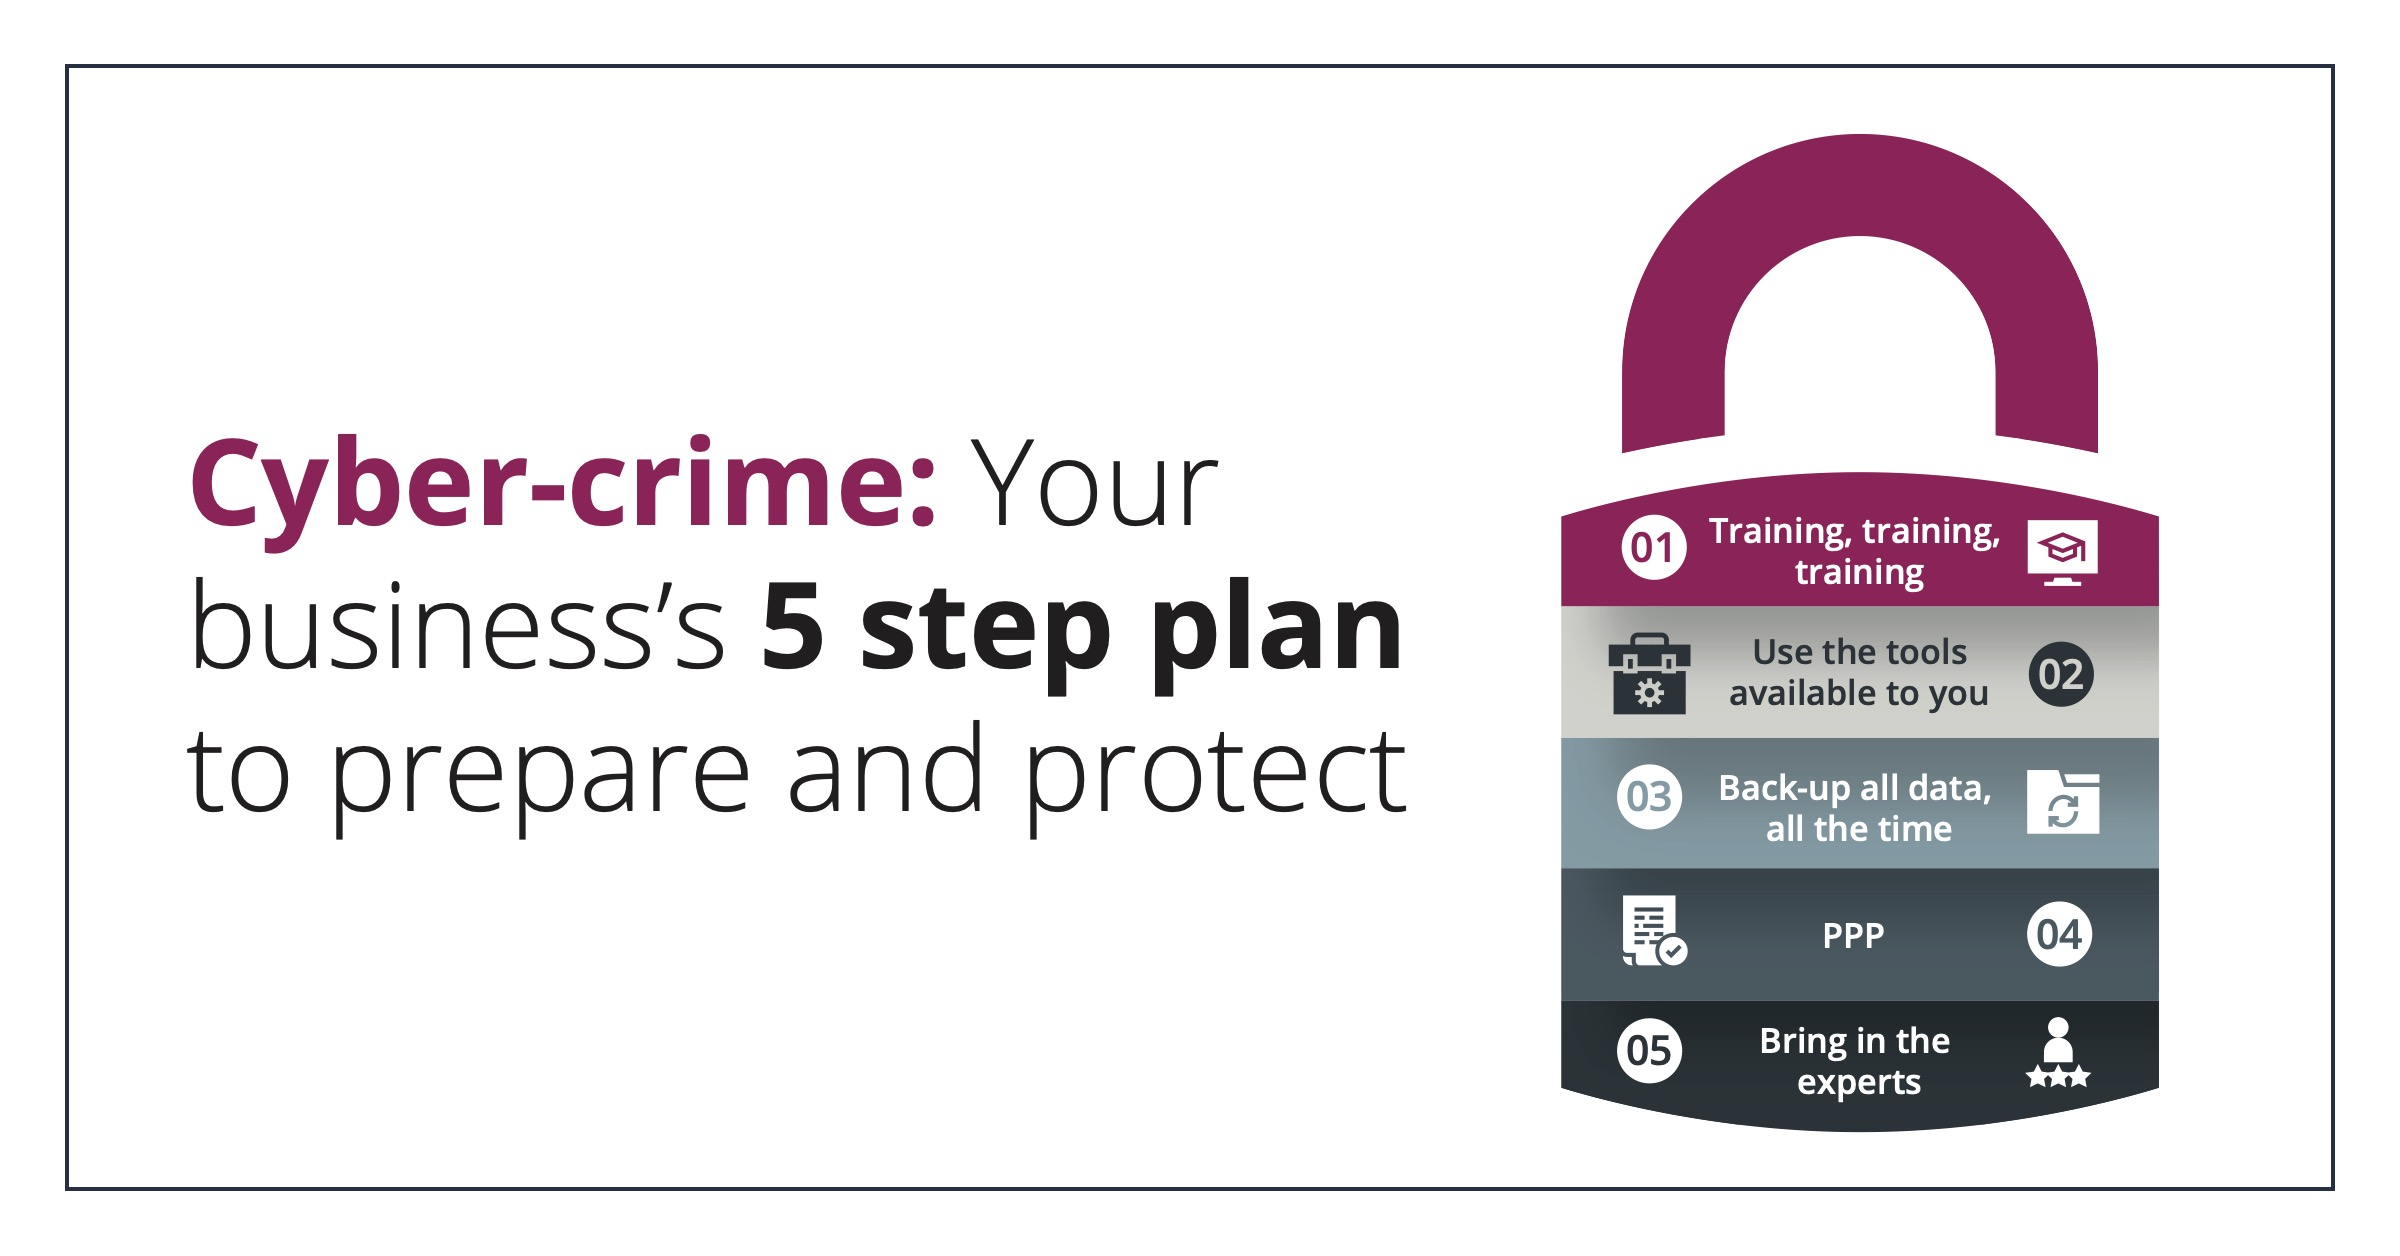 cybercrime 5 step guide